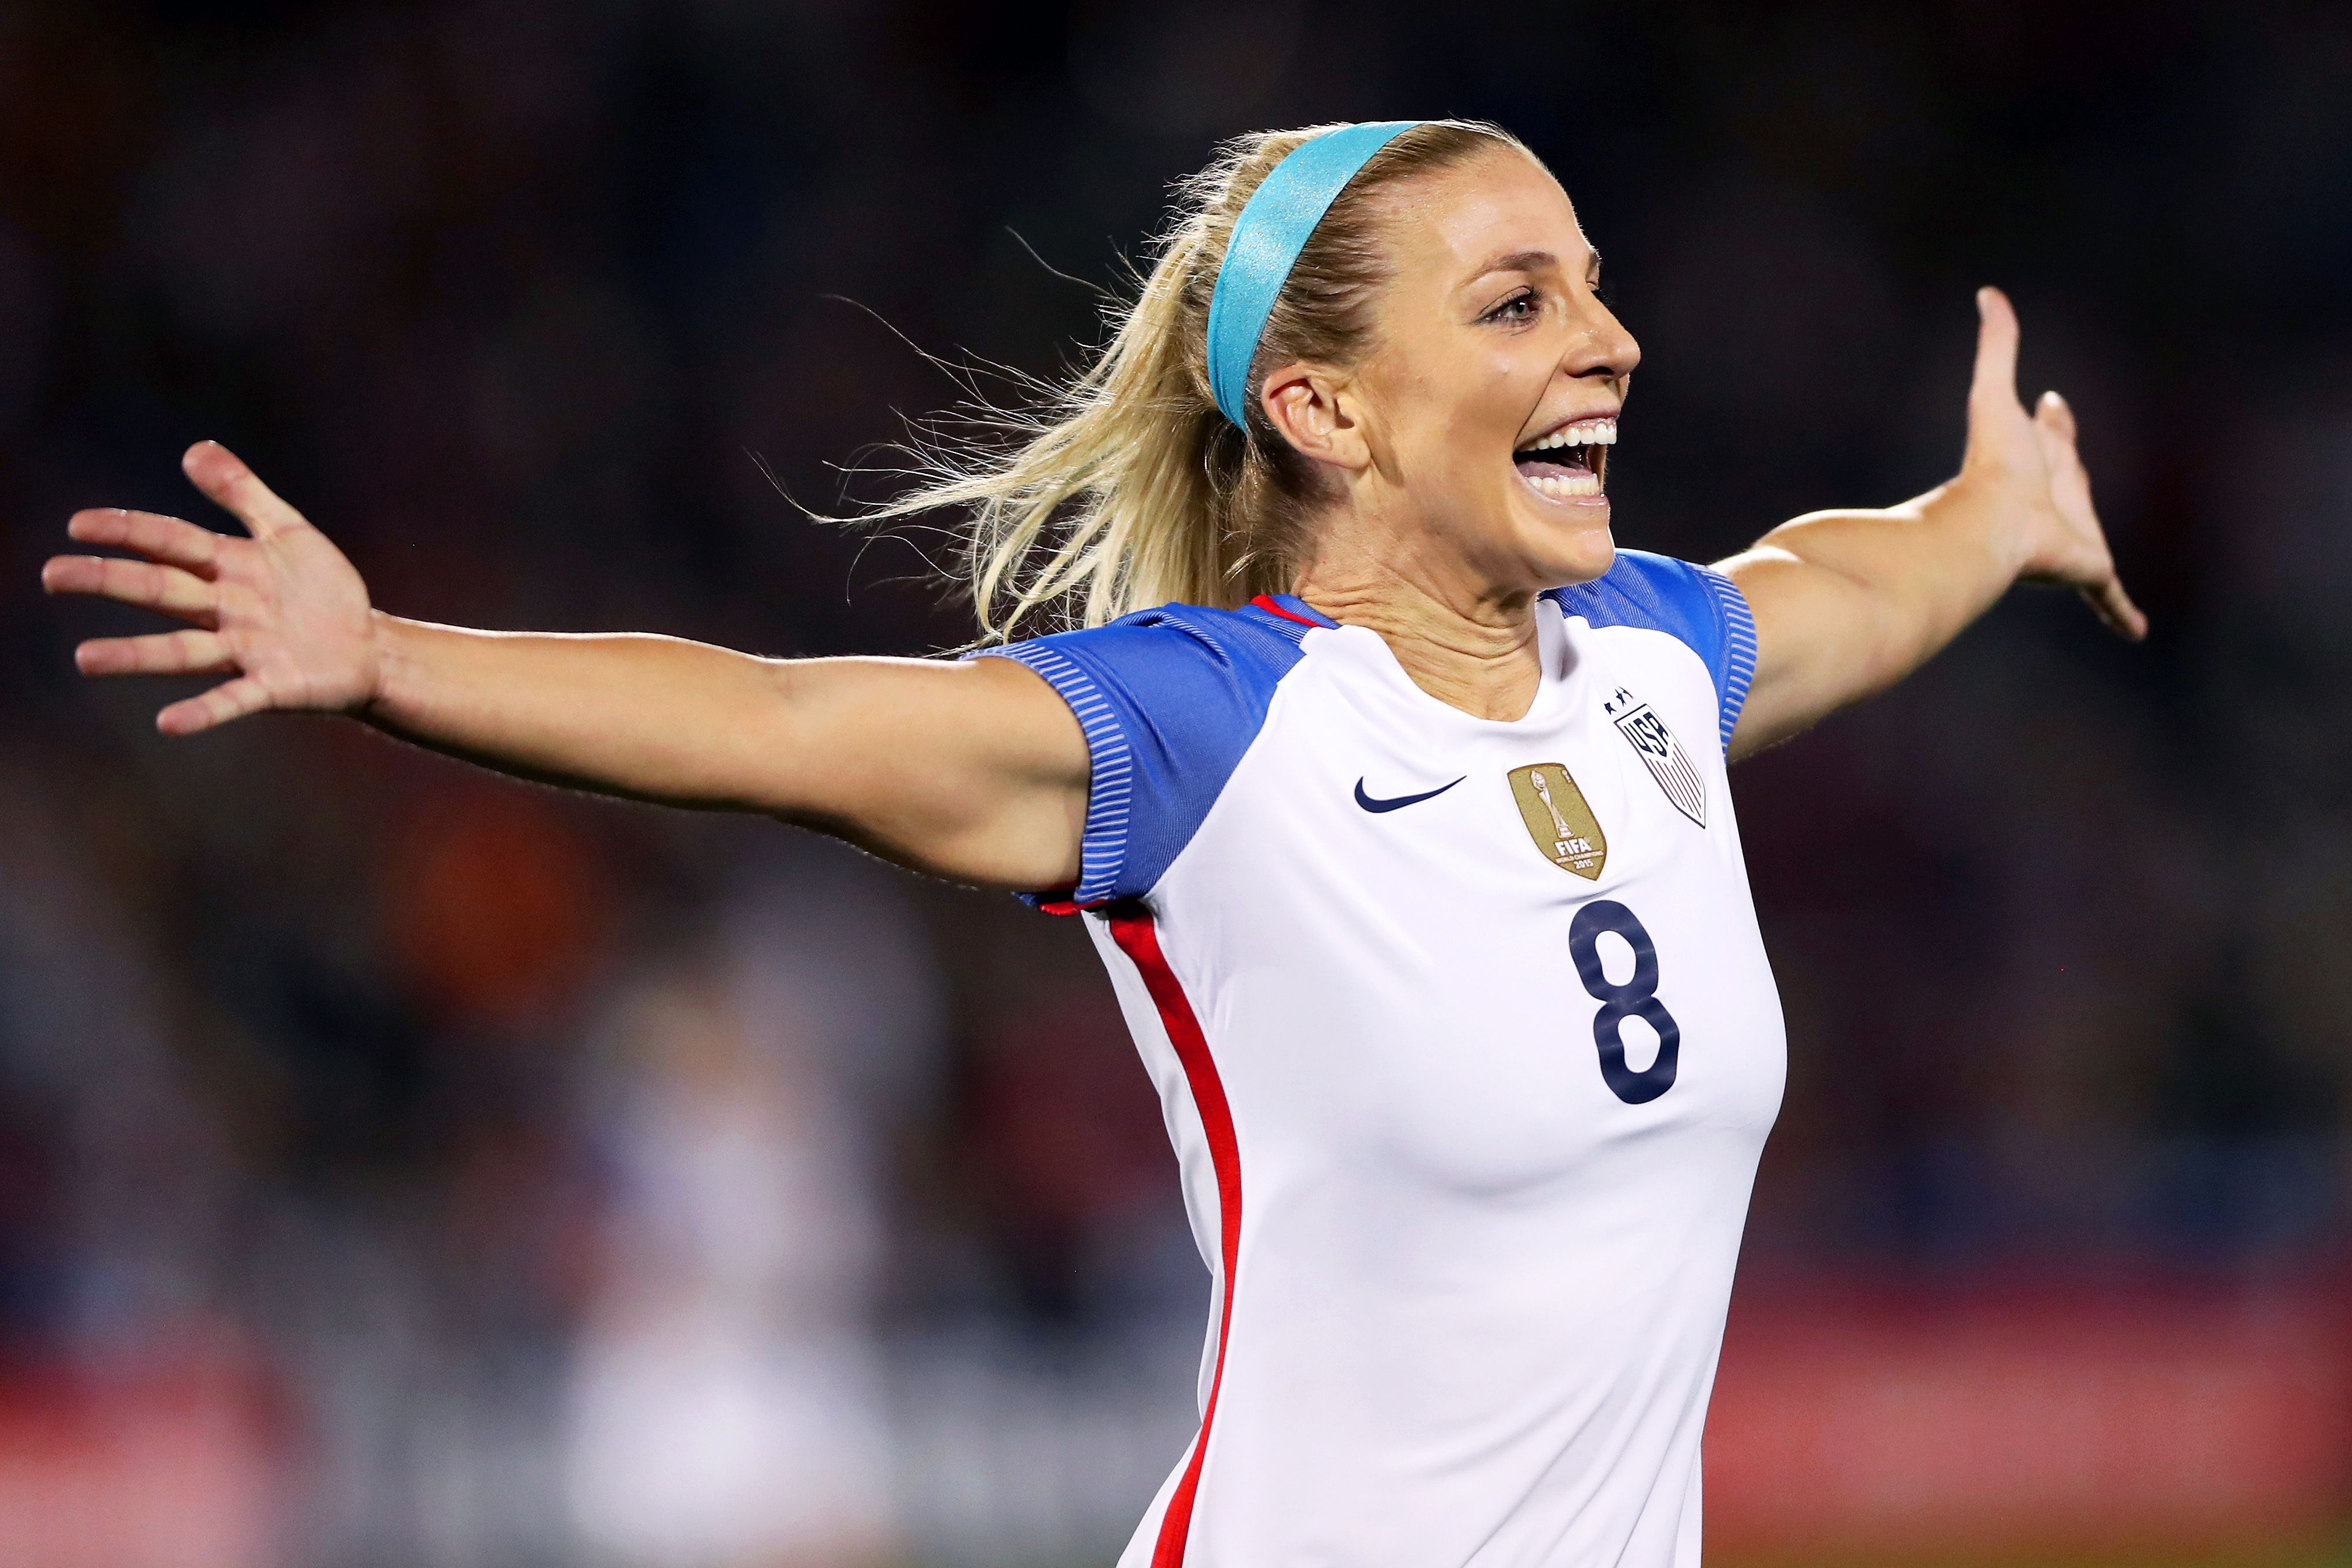 Wow Did You Guys All Know Soccer Star Julie Ertz, Currently Playing For The USWNT, Is Married To A Football Player?